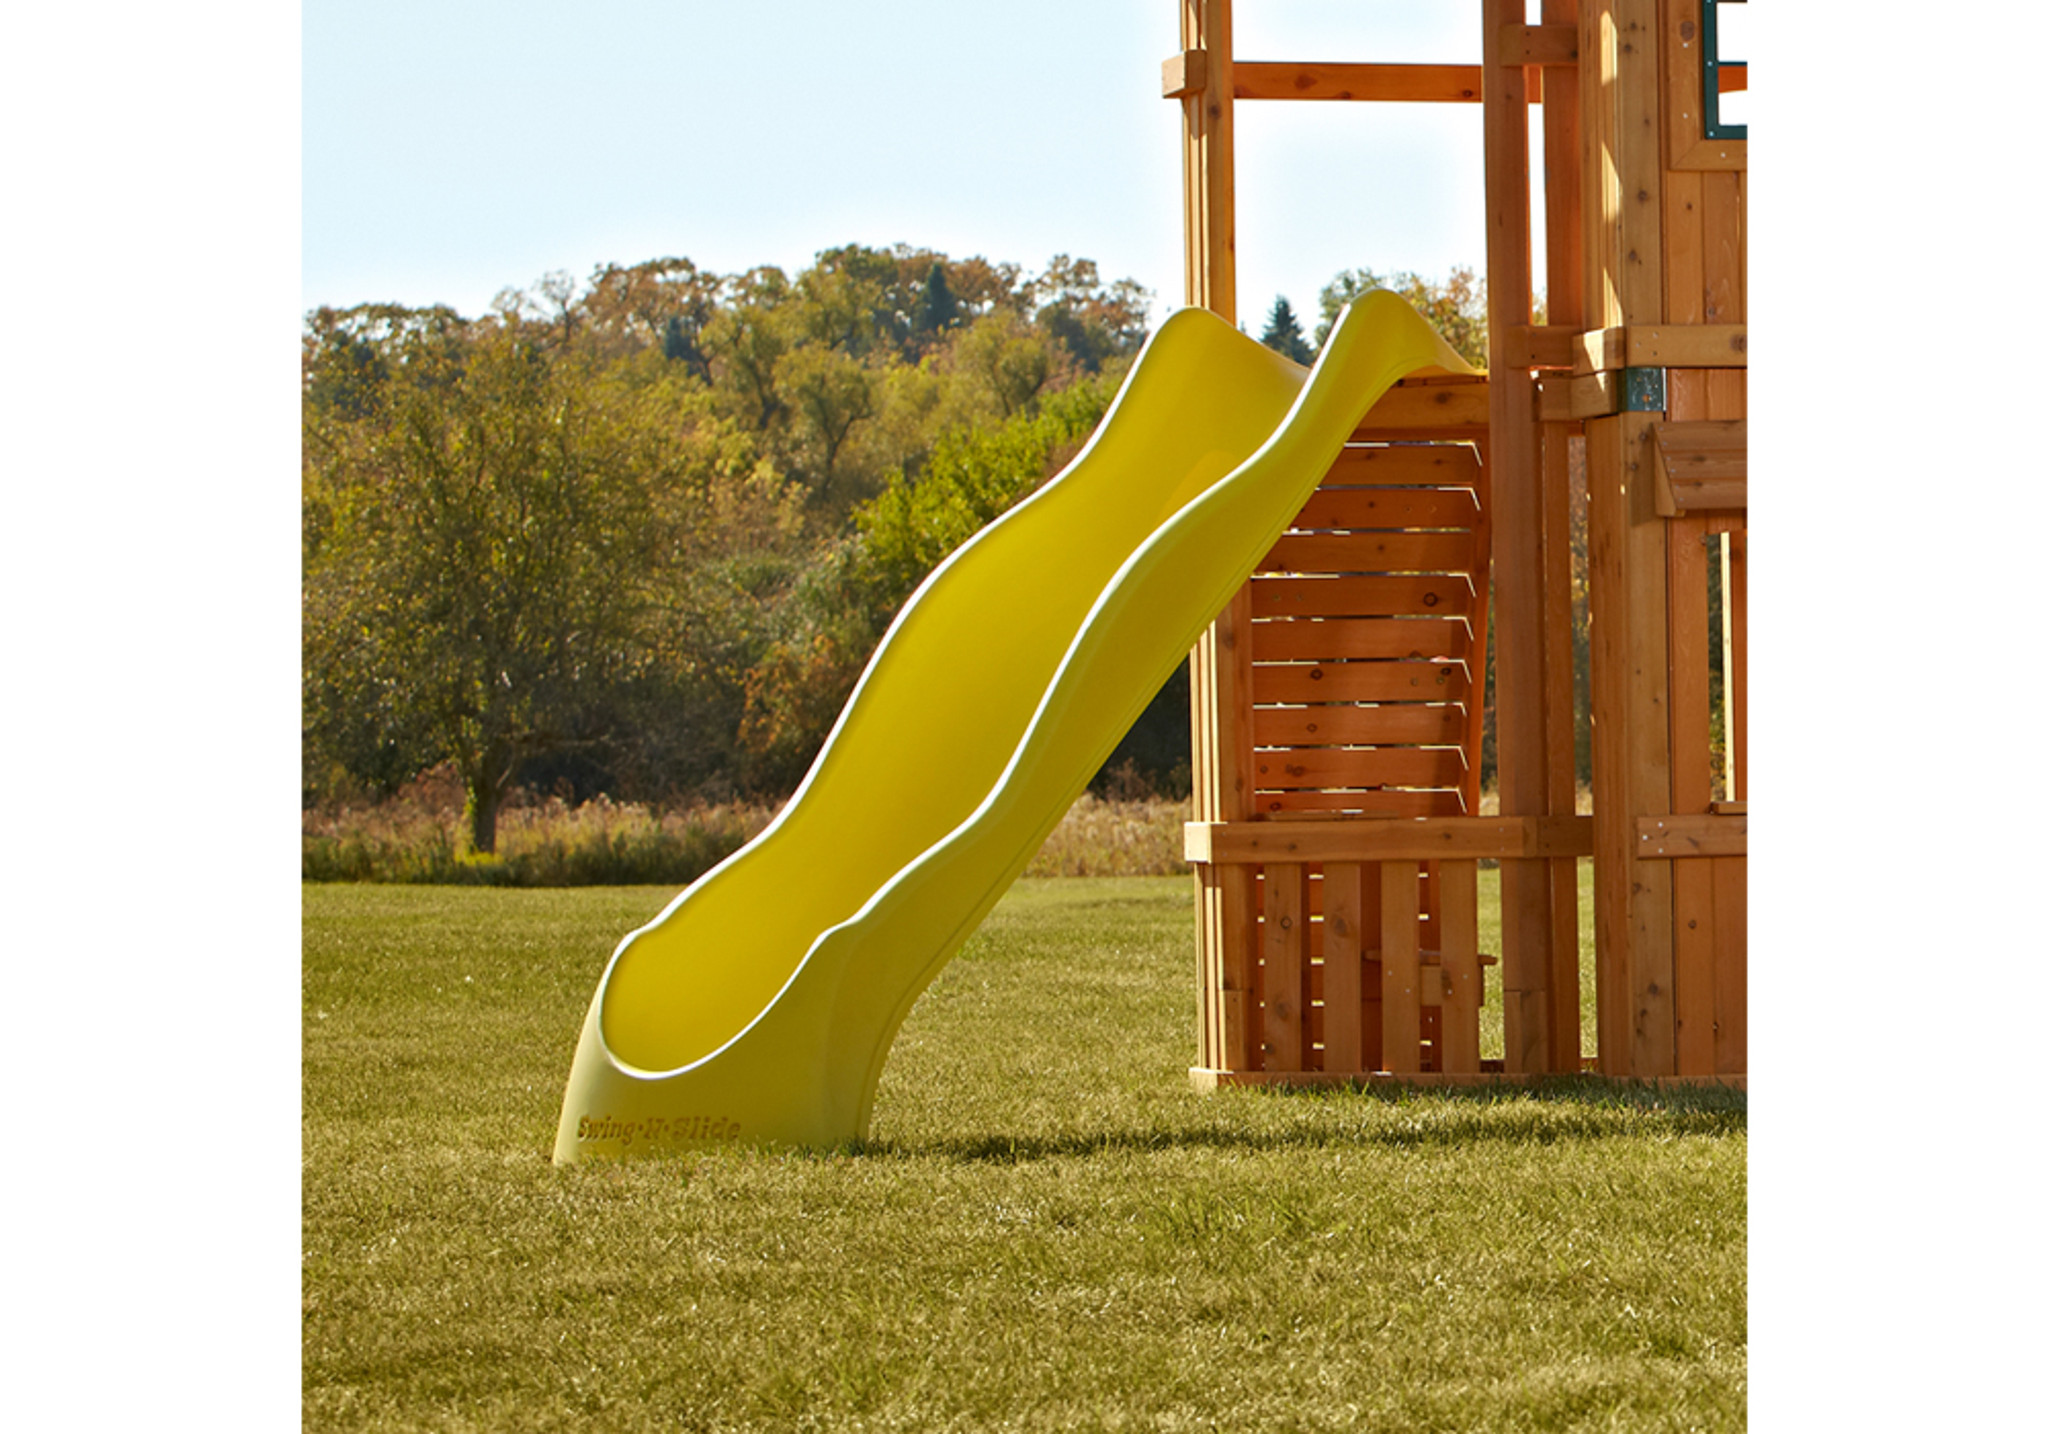 Outdoor Alt shot of Yellow Speedwave Slide from PlayNation Play Systems.